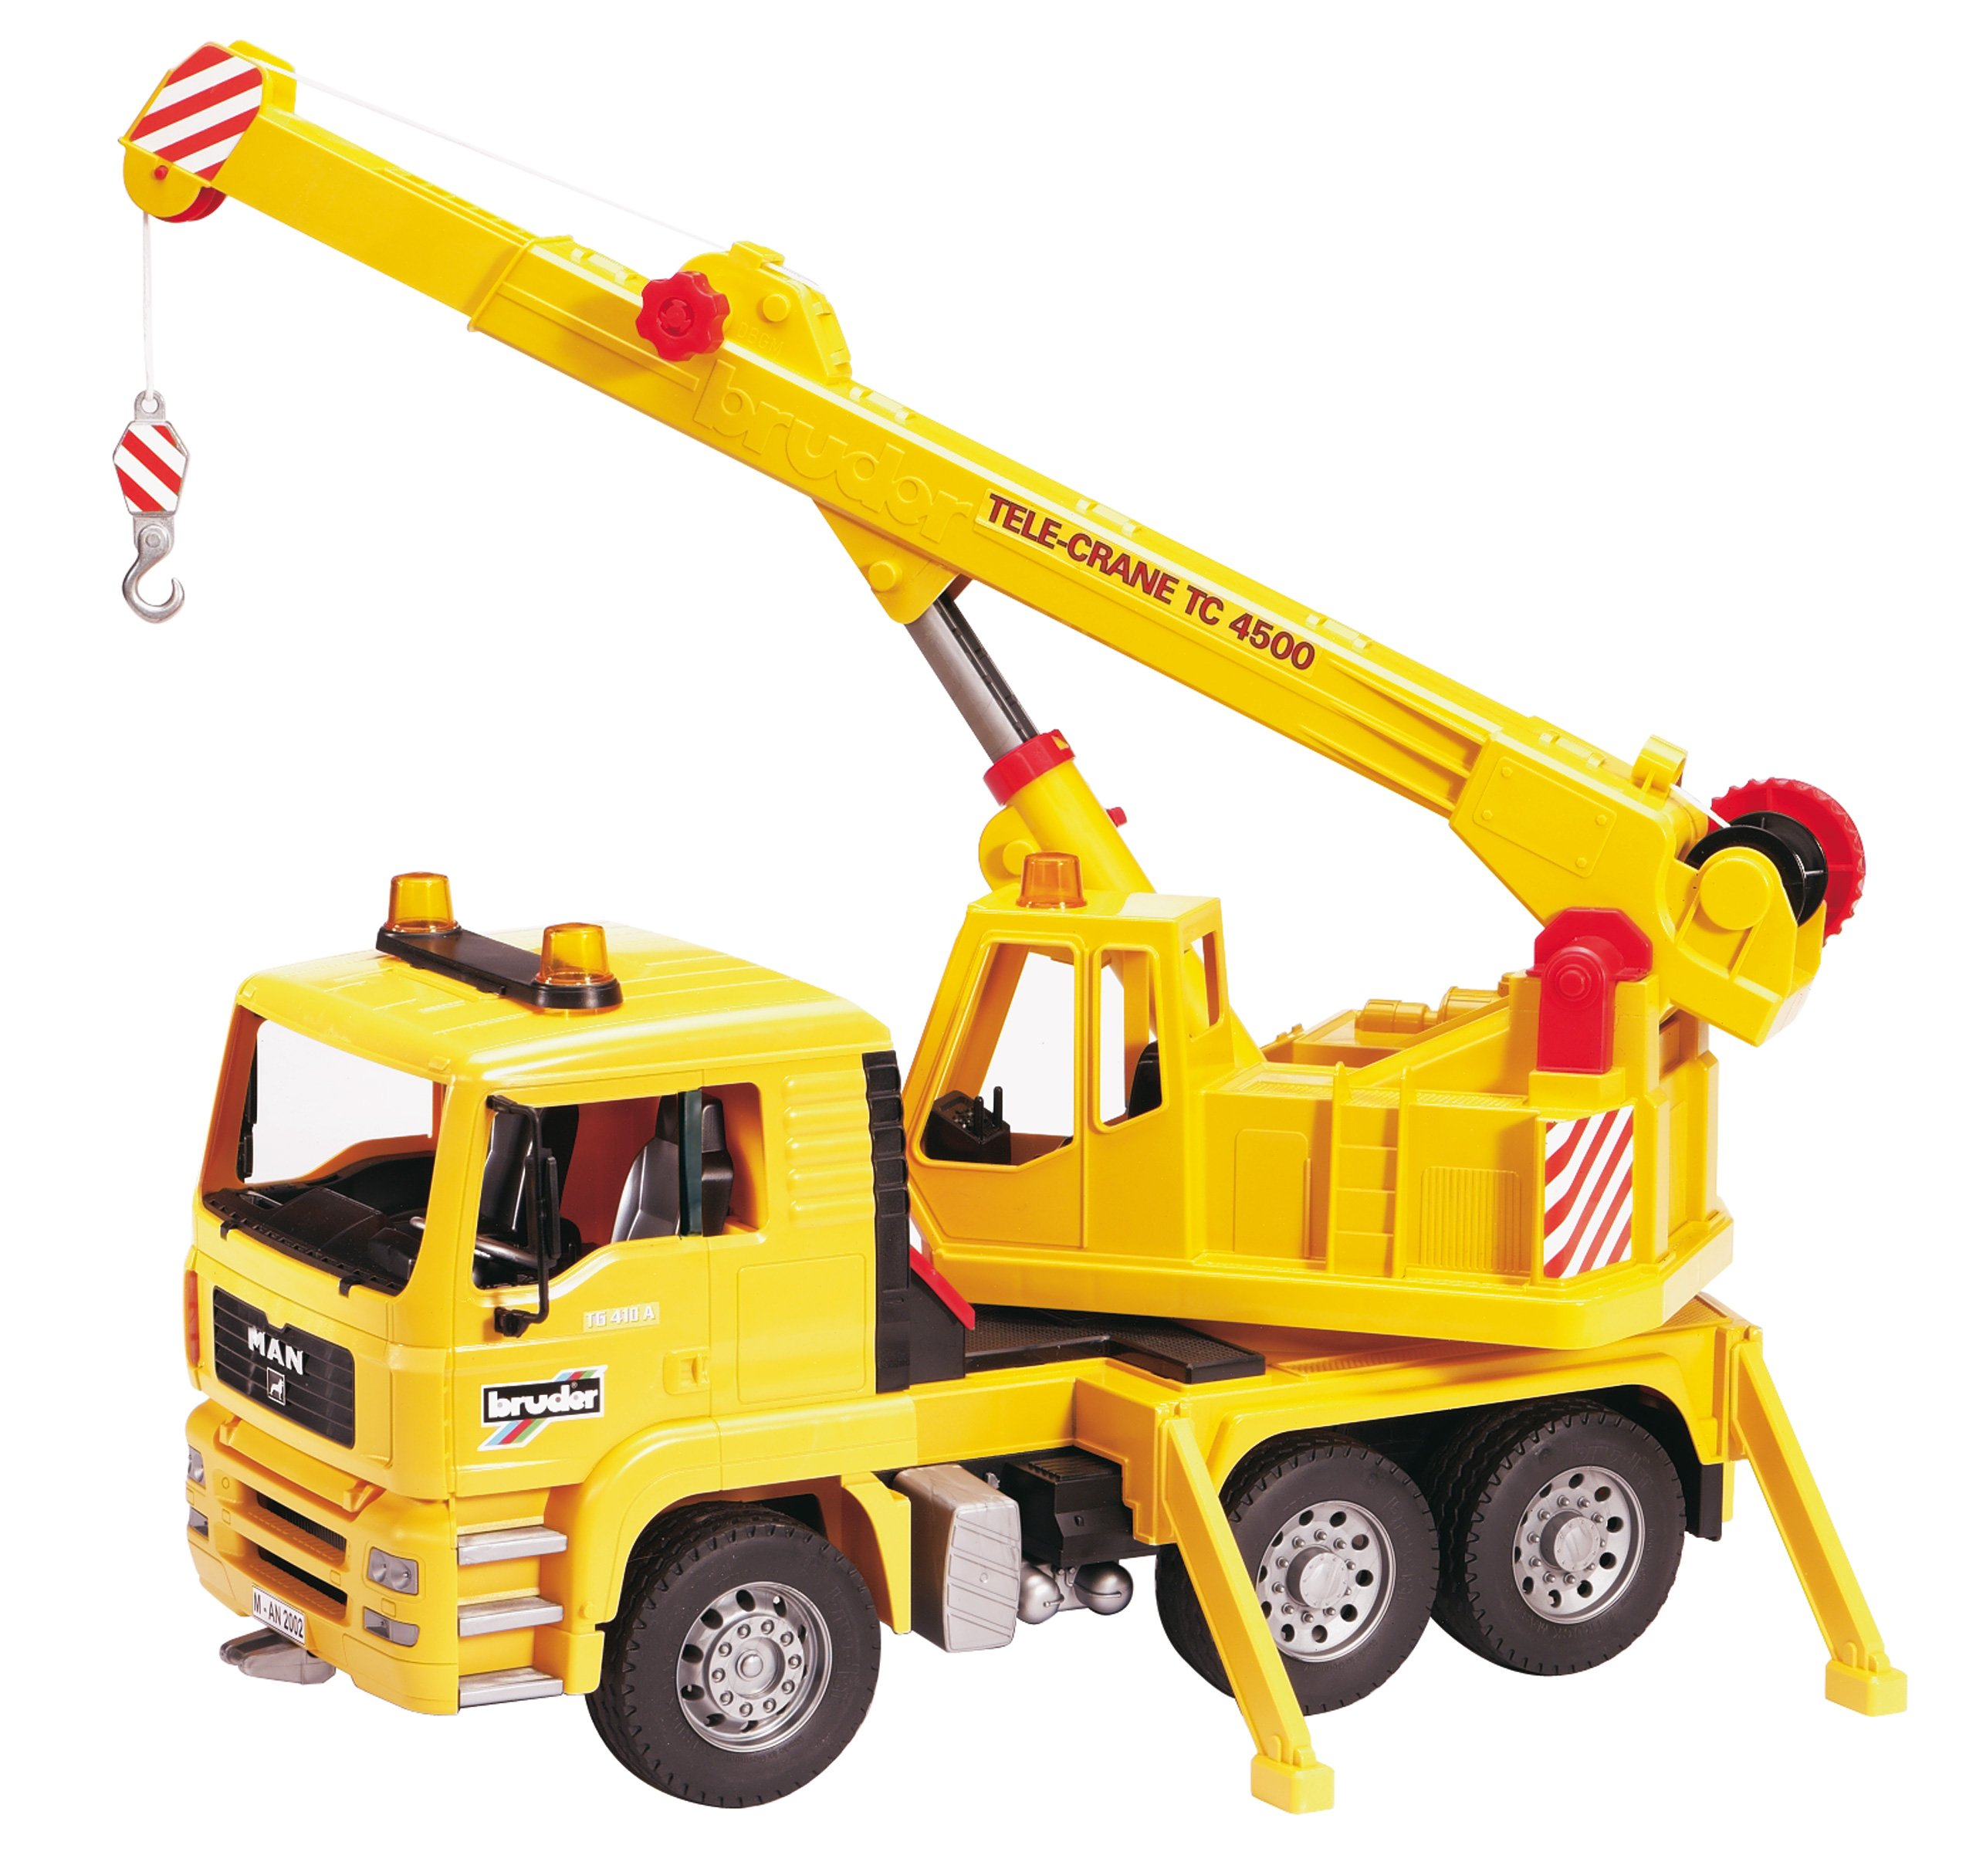 Bruder Construction Toys : Bruder man crane truck construction site vehicle tool toy